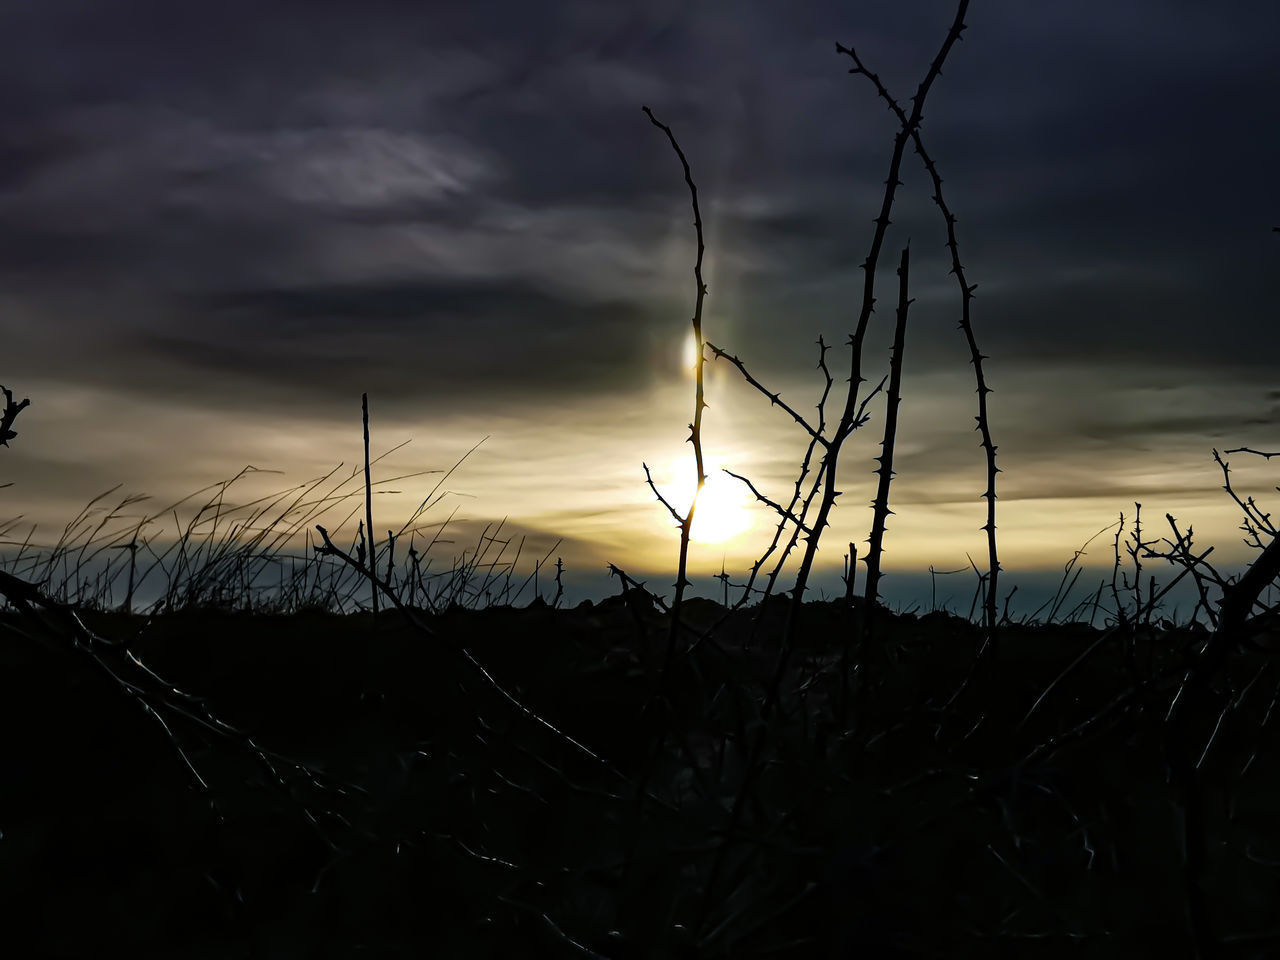 SILHOUETTE PLANTS ON FIELD DURING SUNSET